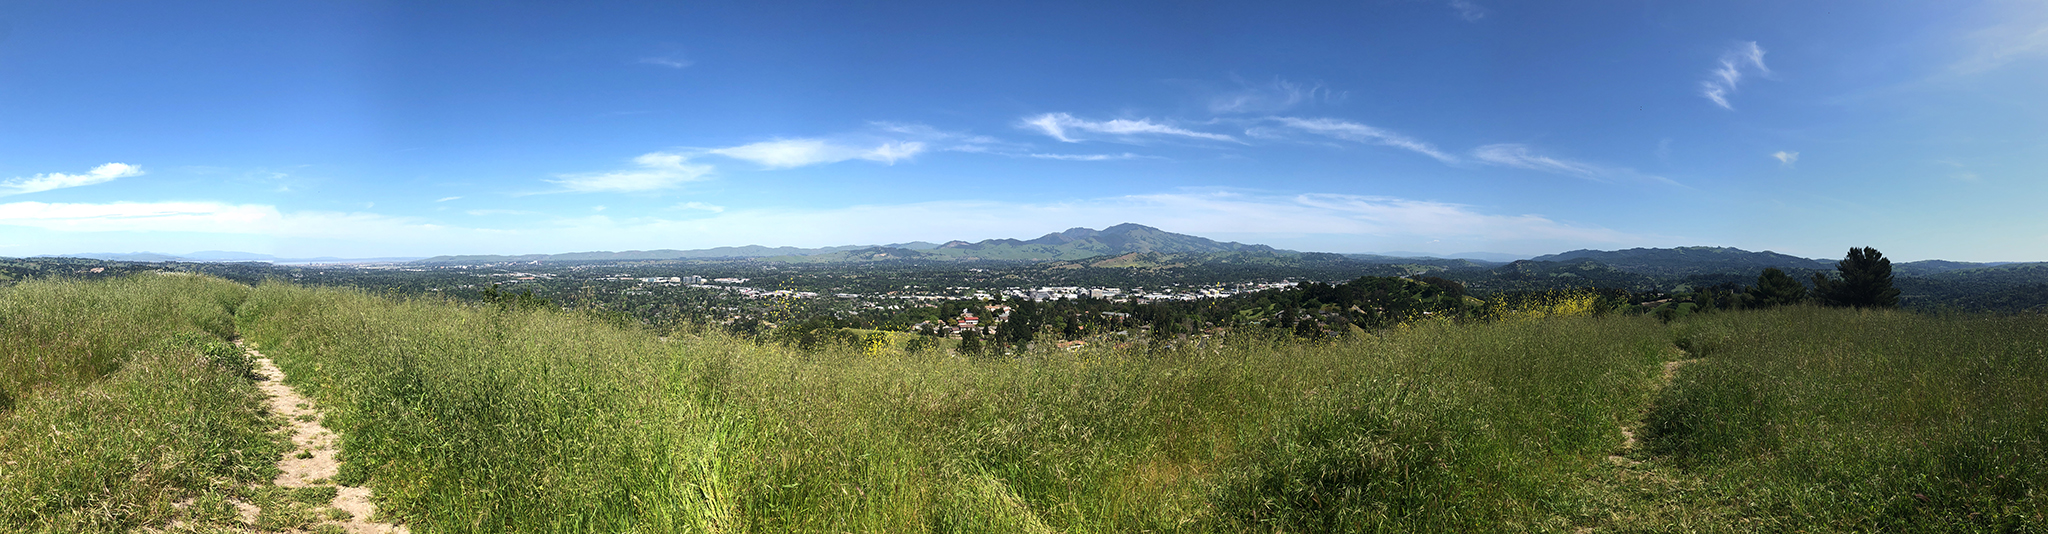 Three approaches to panoramas for the iPhone – The Injection